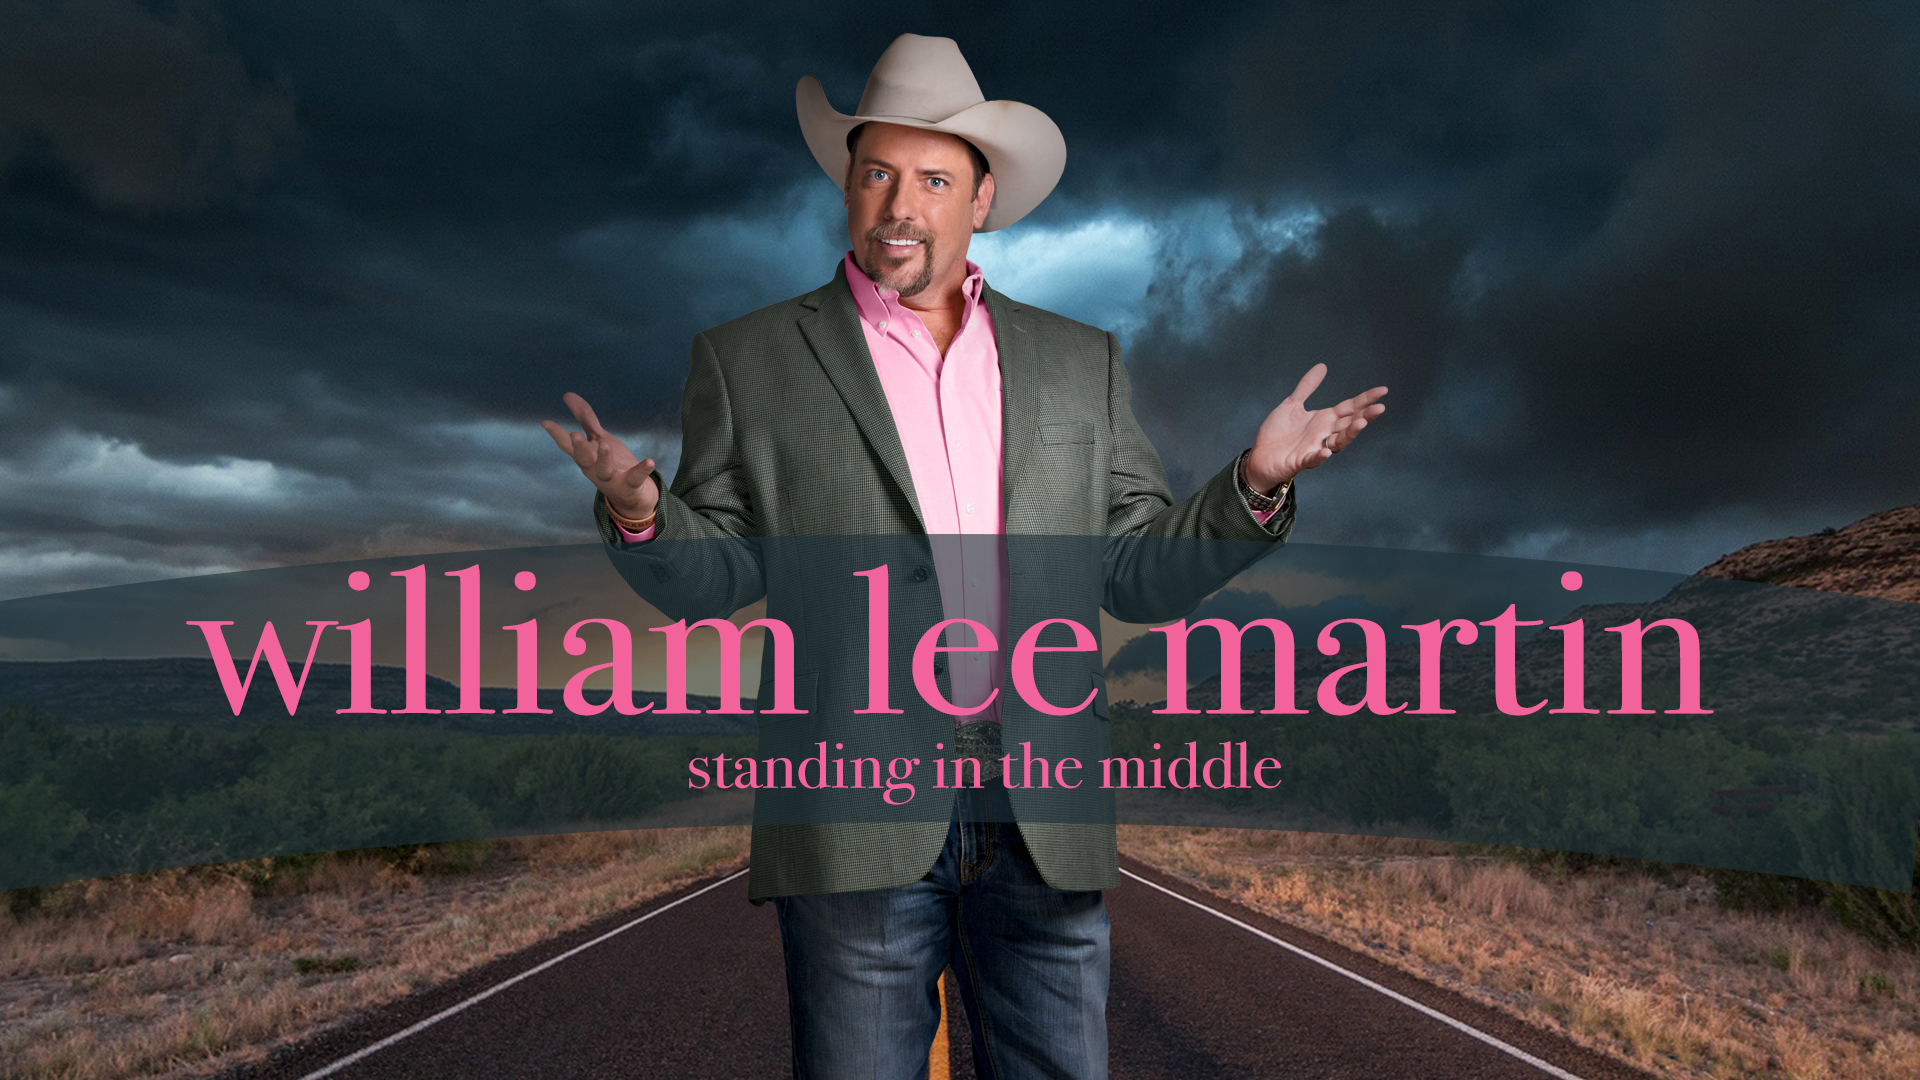 William Lee Martin: Standing in the Middle